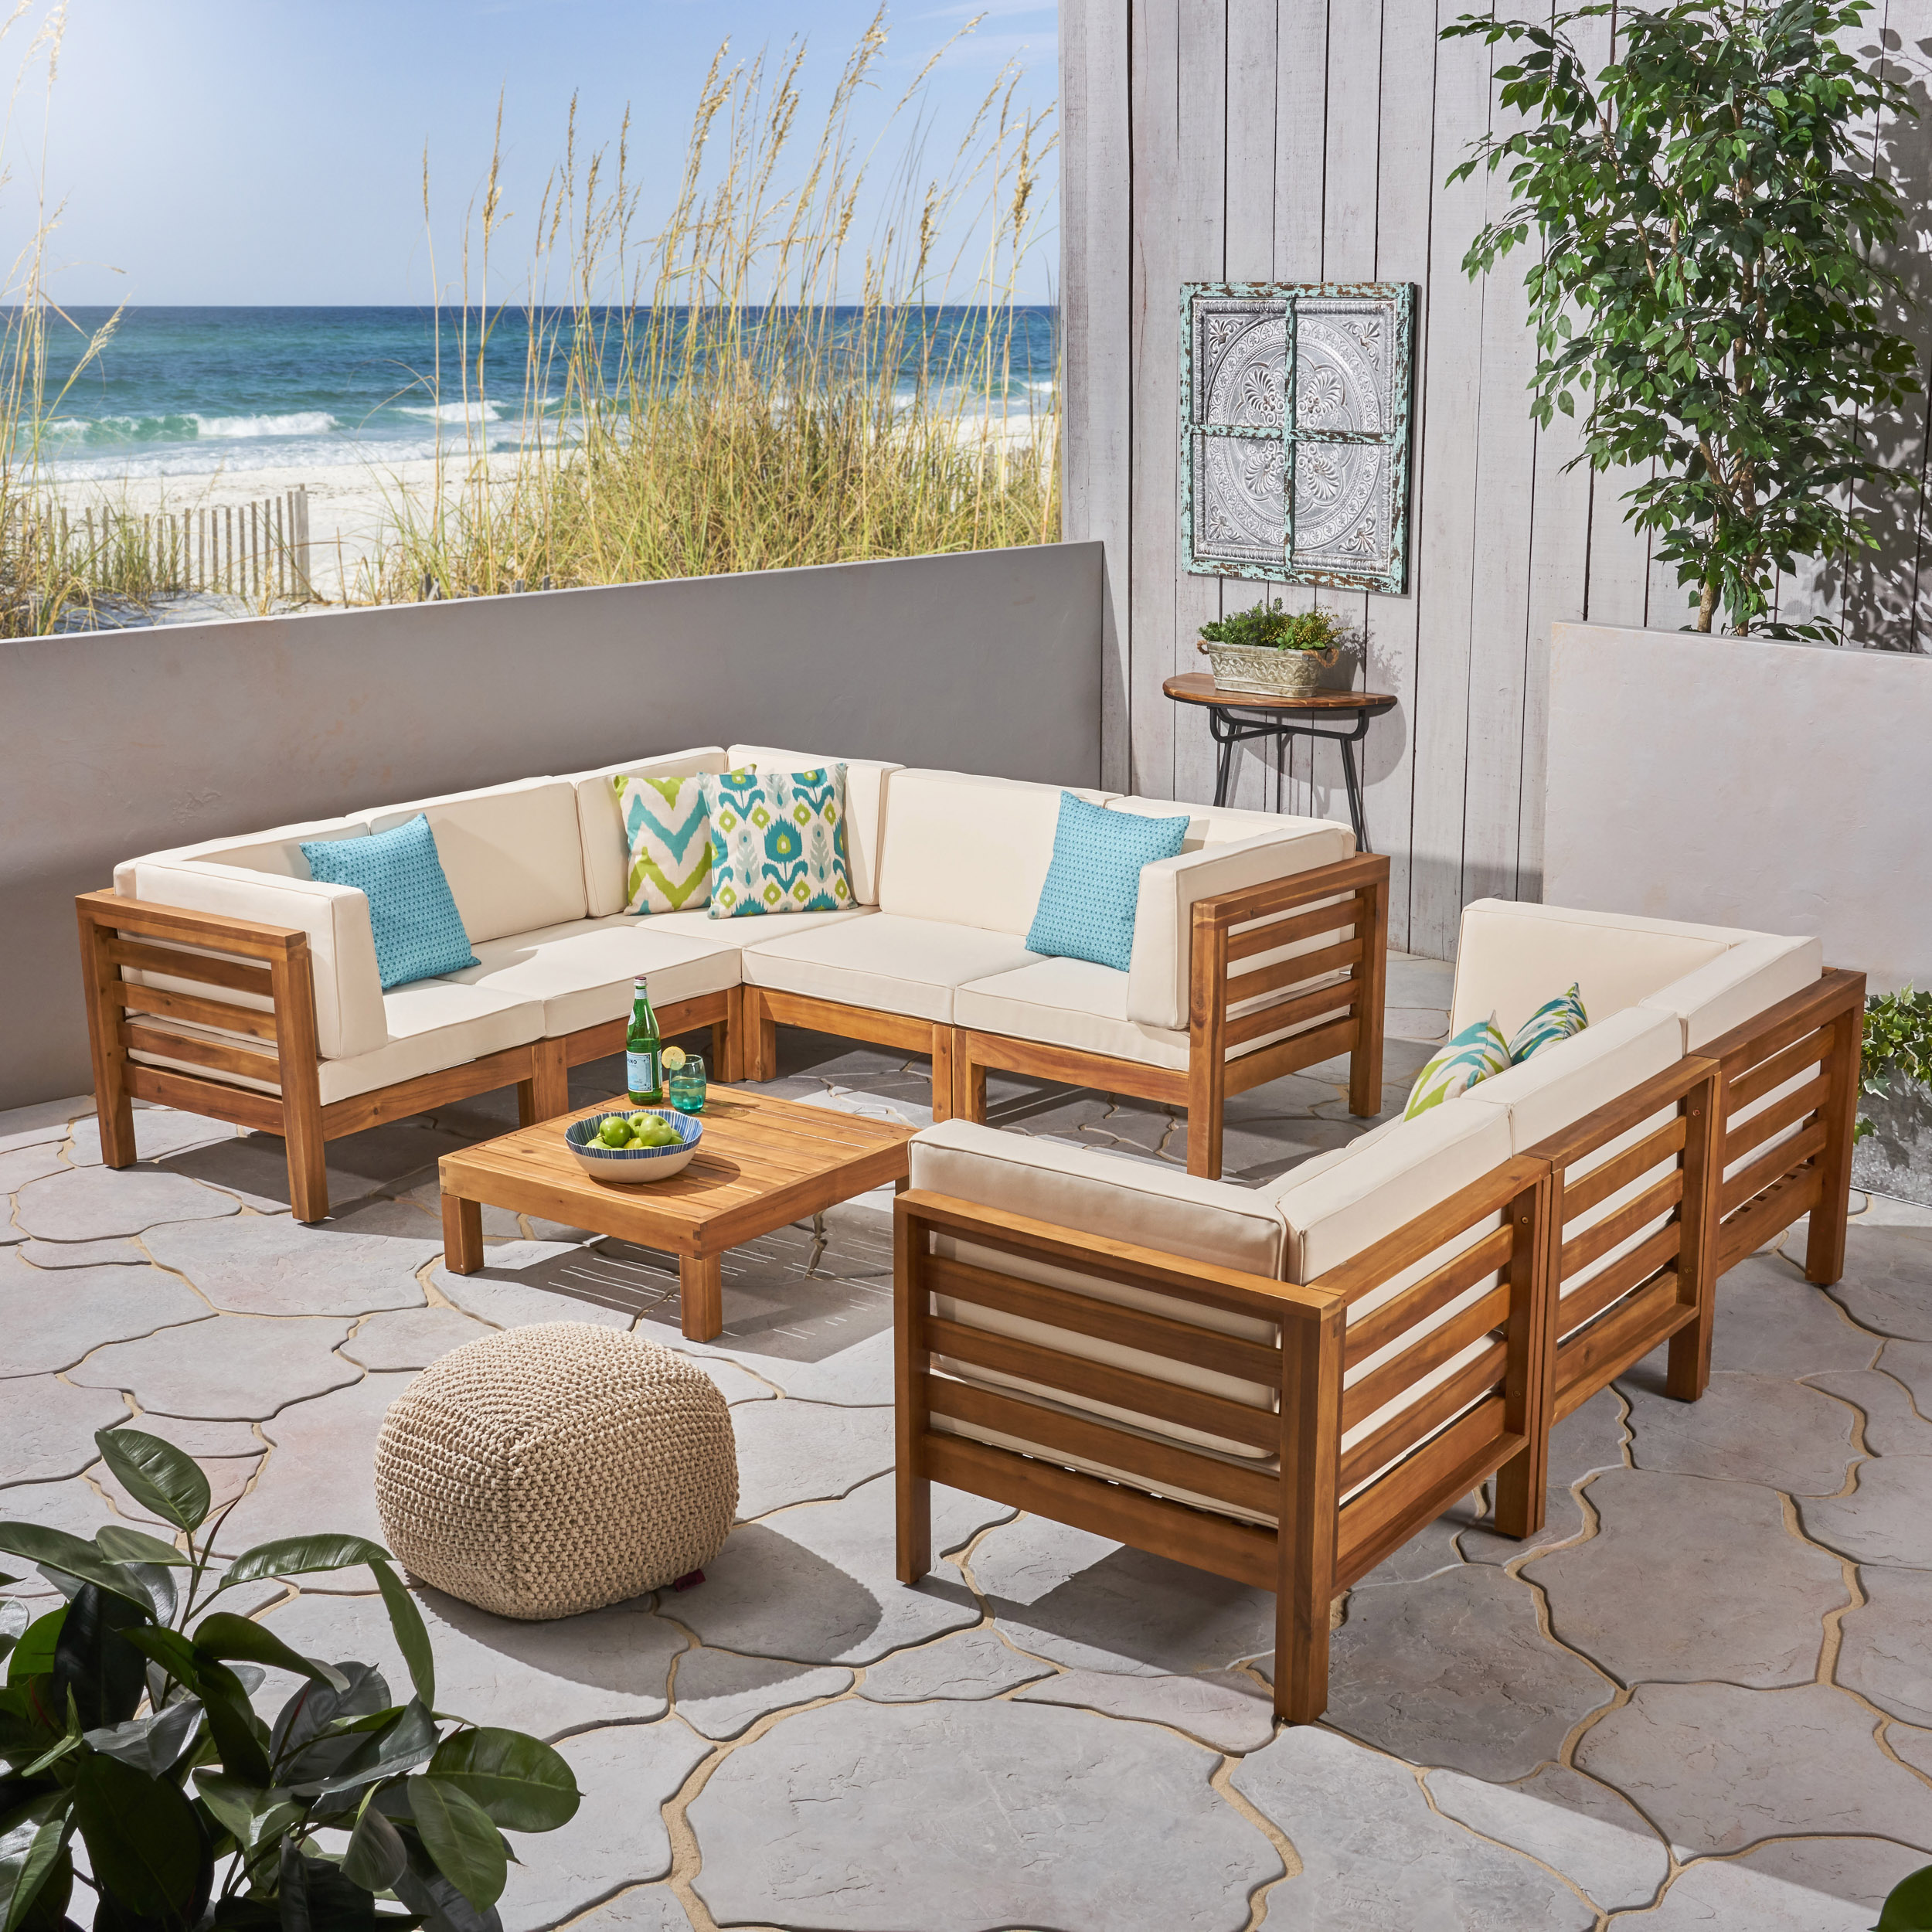 Frankie Outdoor 9 Piece Acacia Wood Sectional Sofa Set with Coffee Table and Cushions, Gray, White